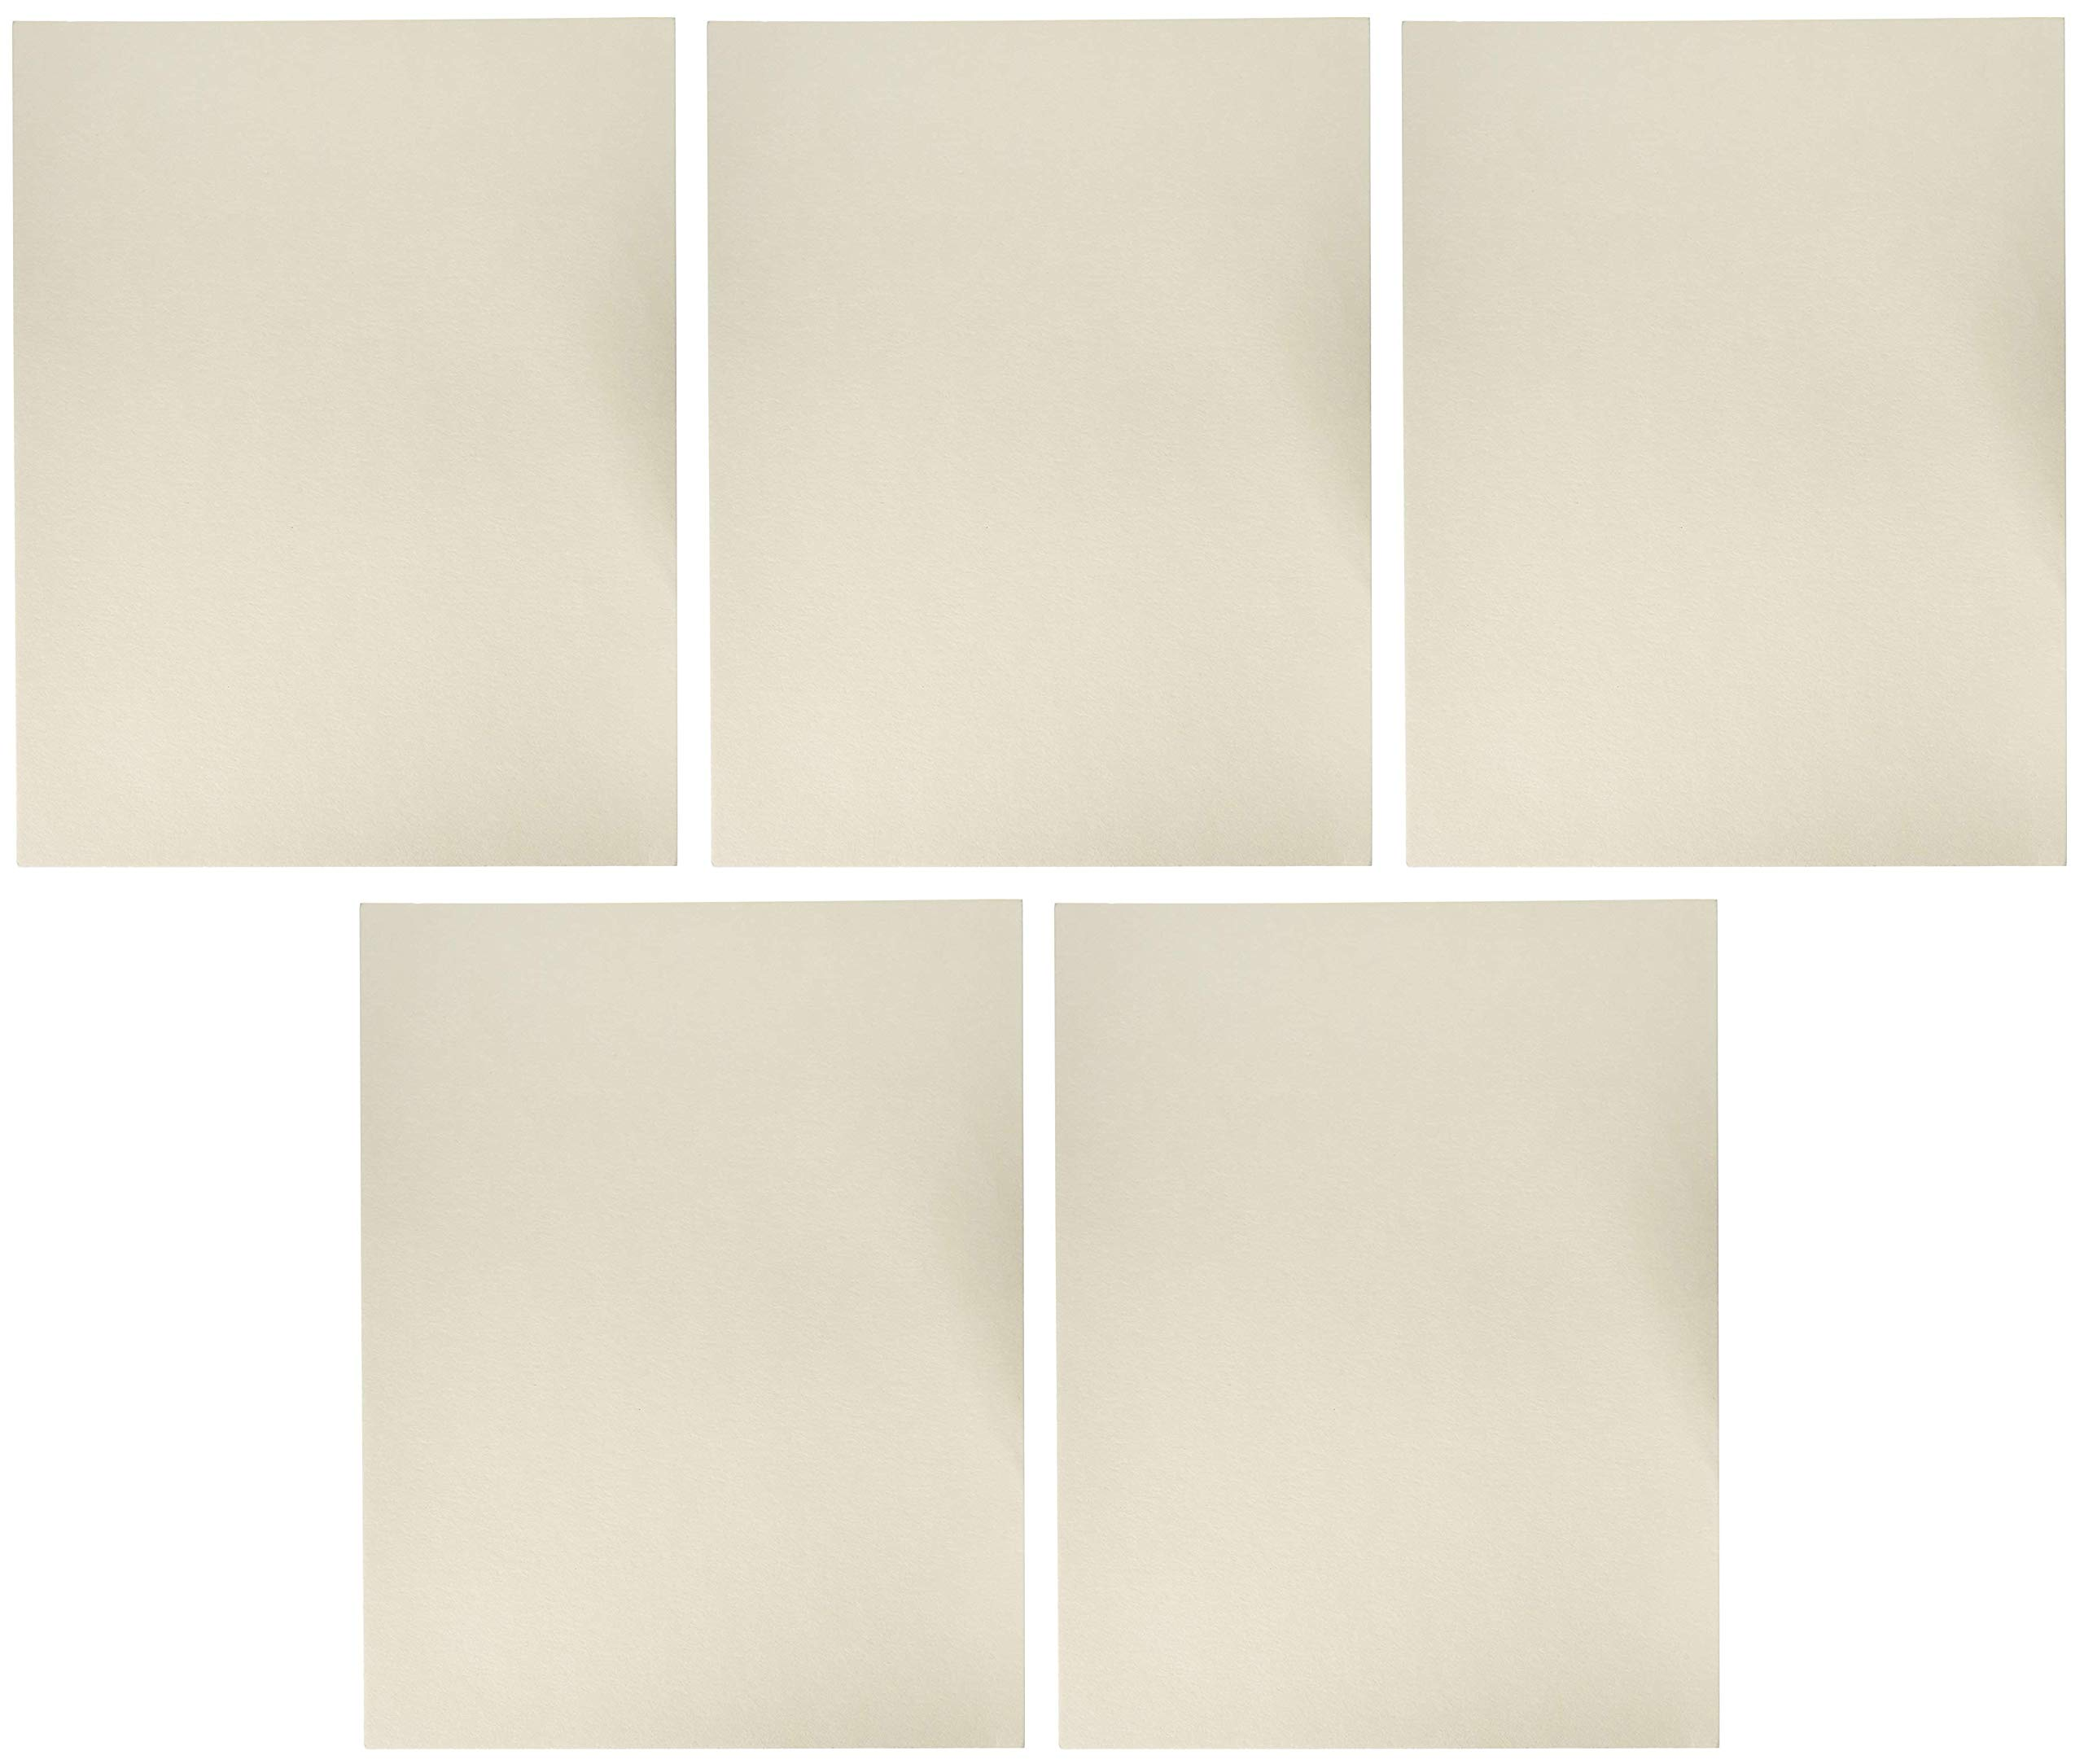 Arnold Grummer Reusable Couch Blotter Sheets, 9-1/4 x 11-3/4 Inches, 20 Sheets (Fіvе Расk)